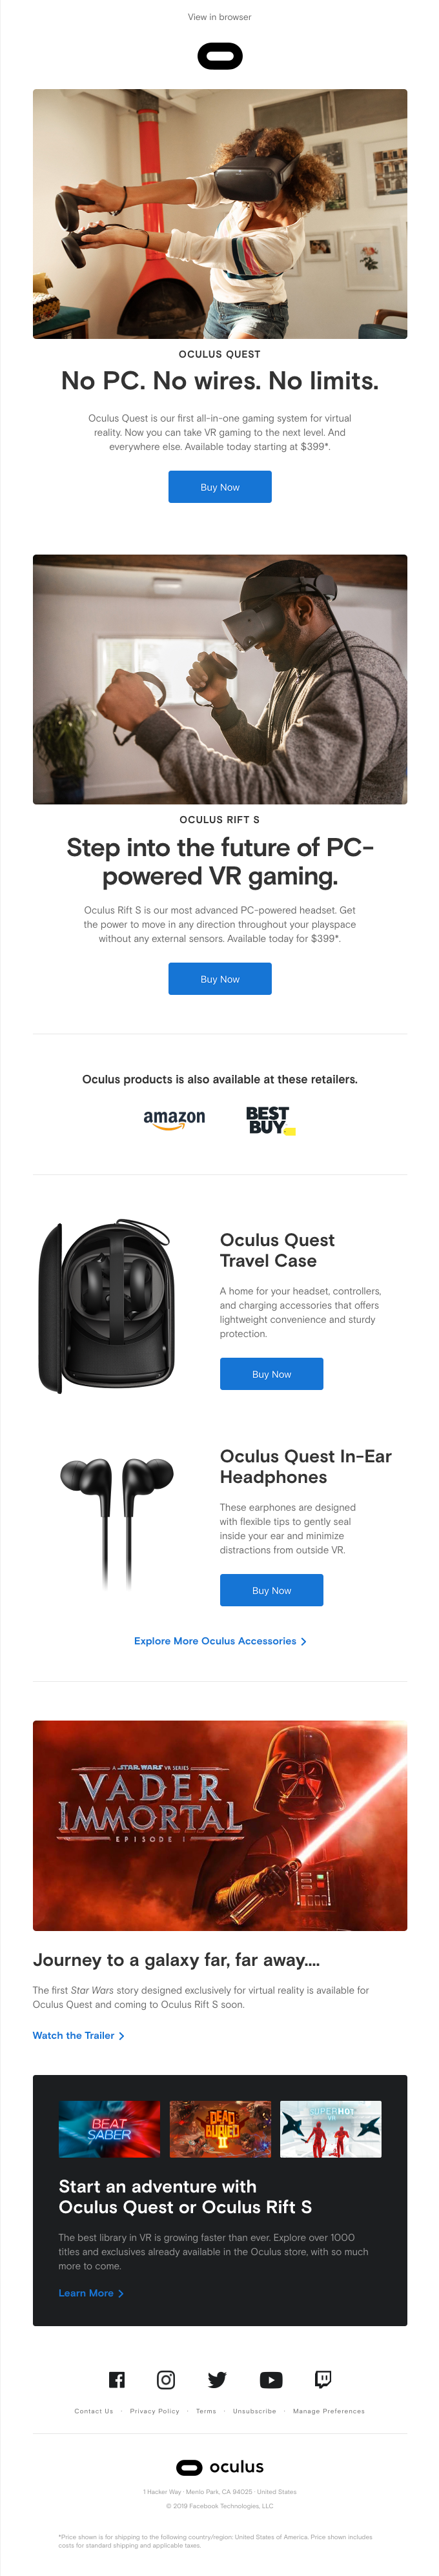 Oculus Quest and Oculus Rift S are shipping.